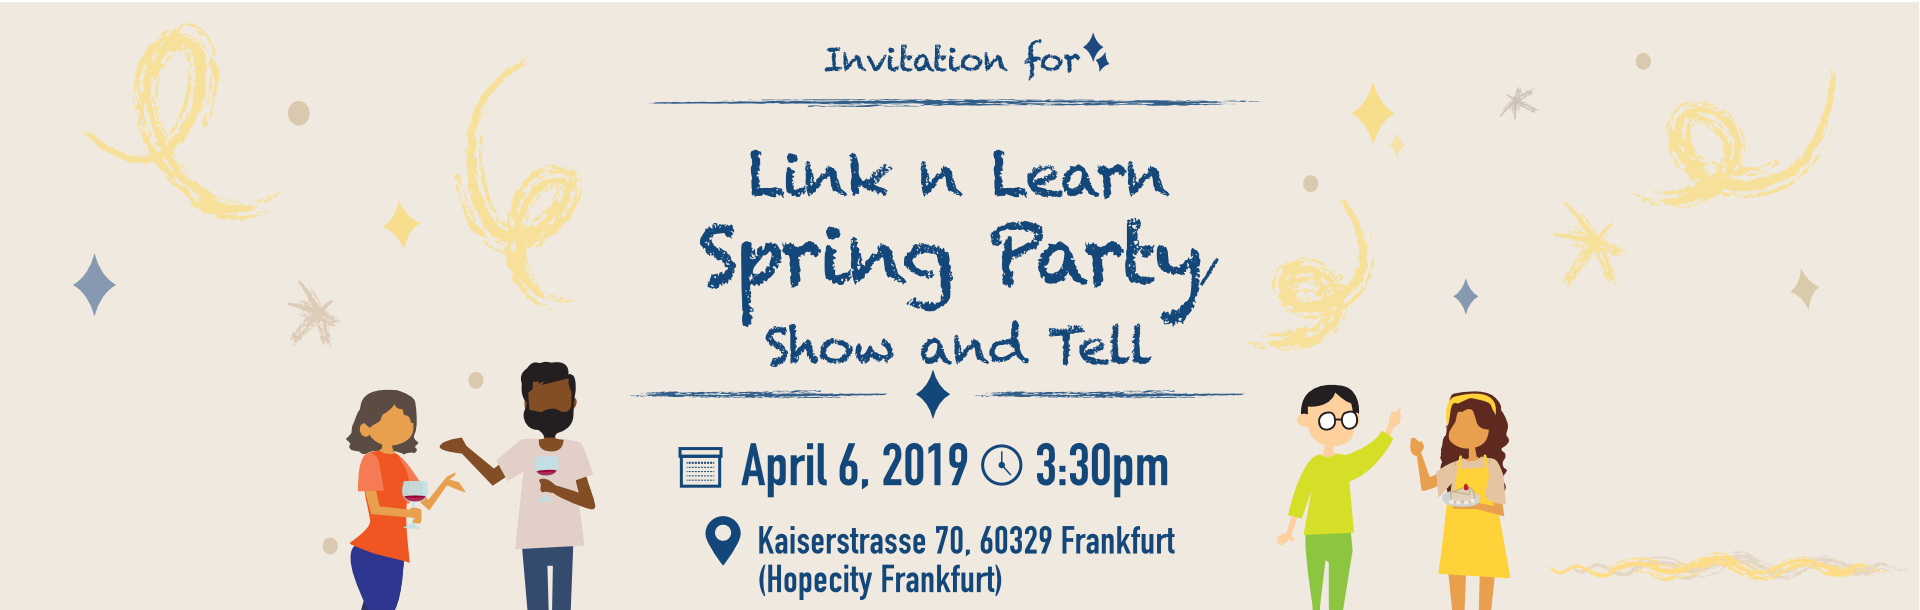 Link n Learn Spring Show and Tell